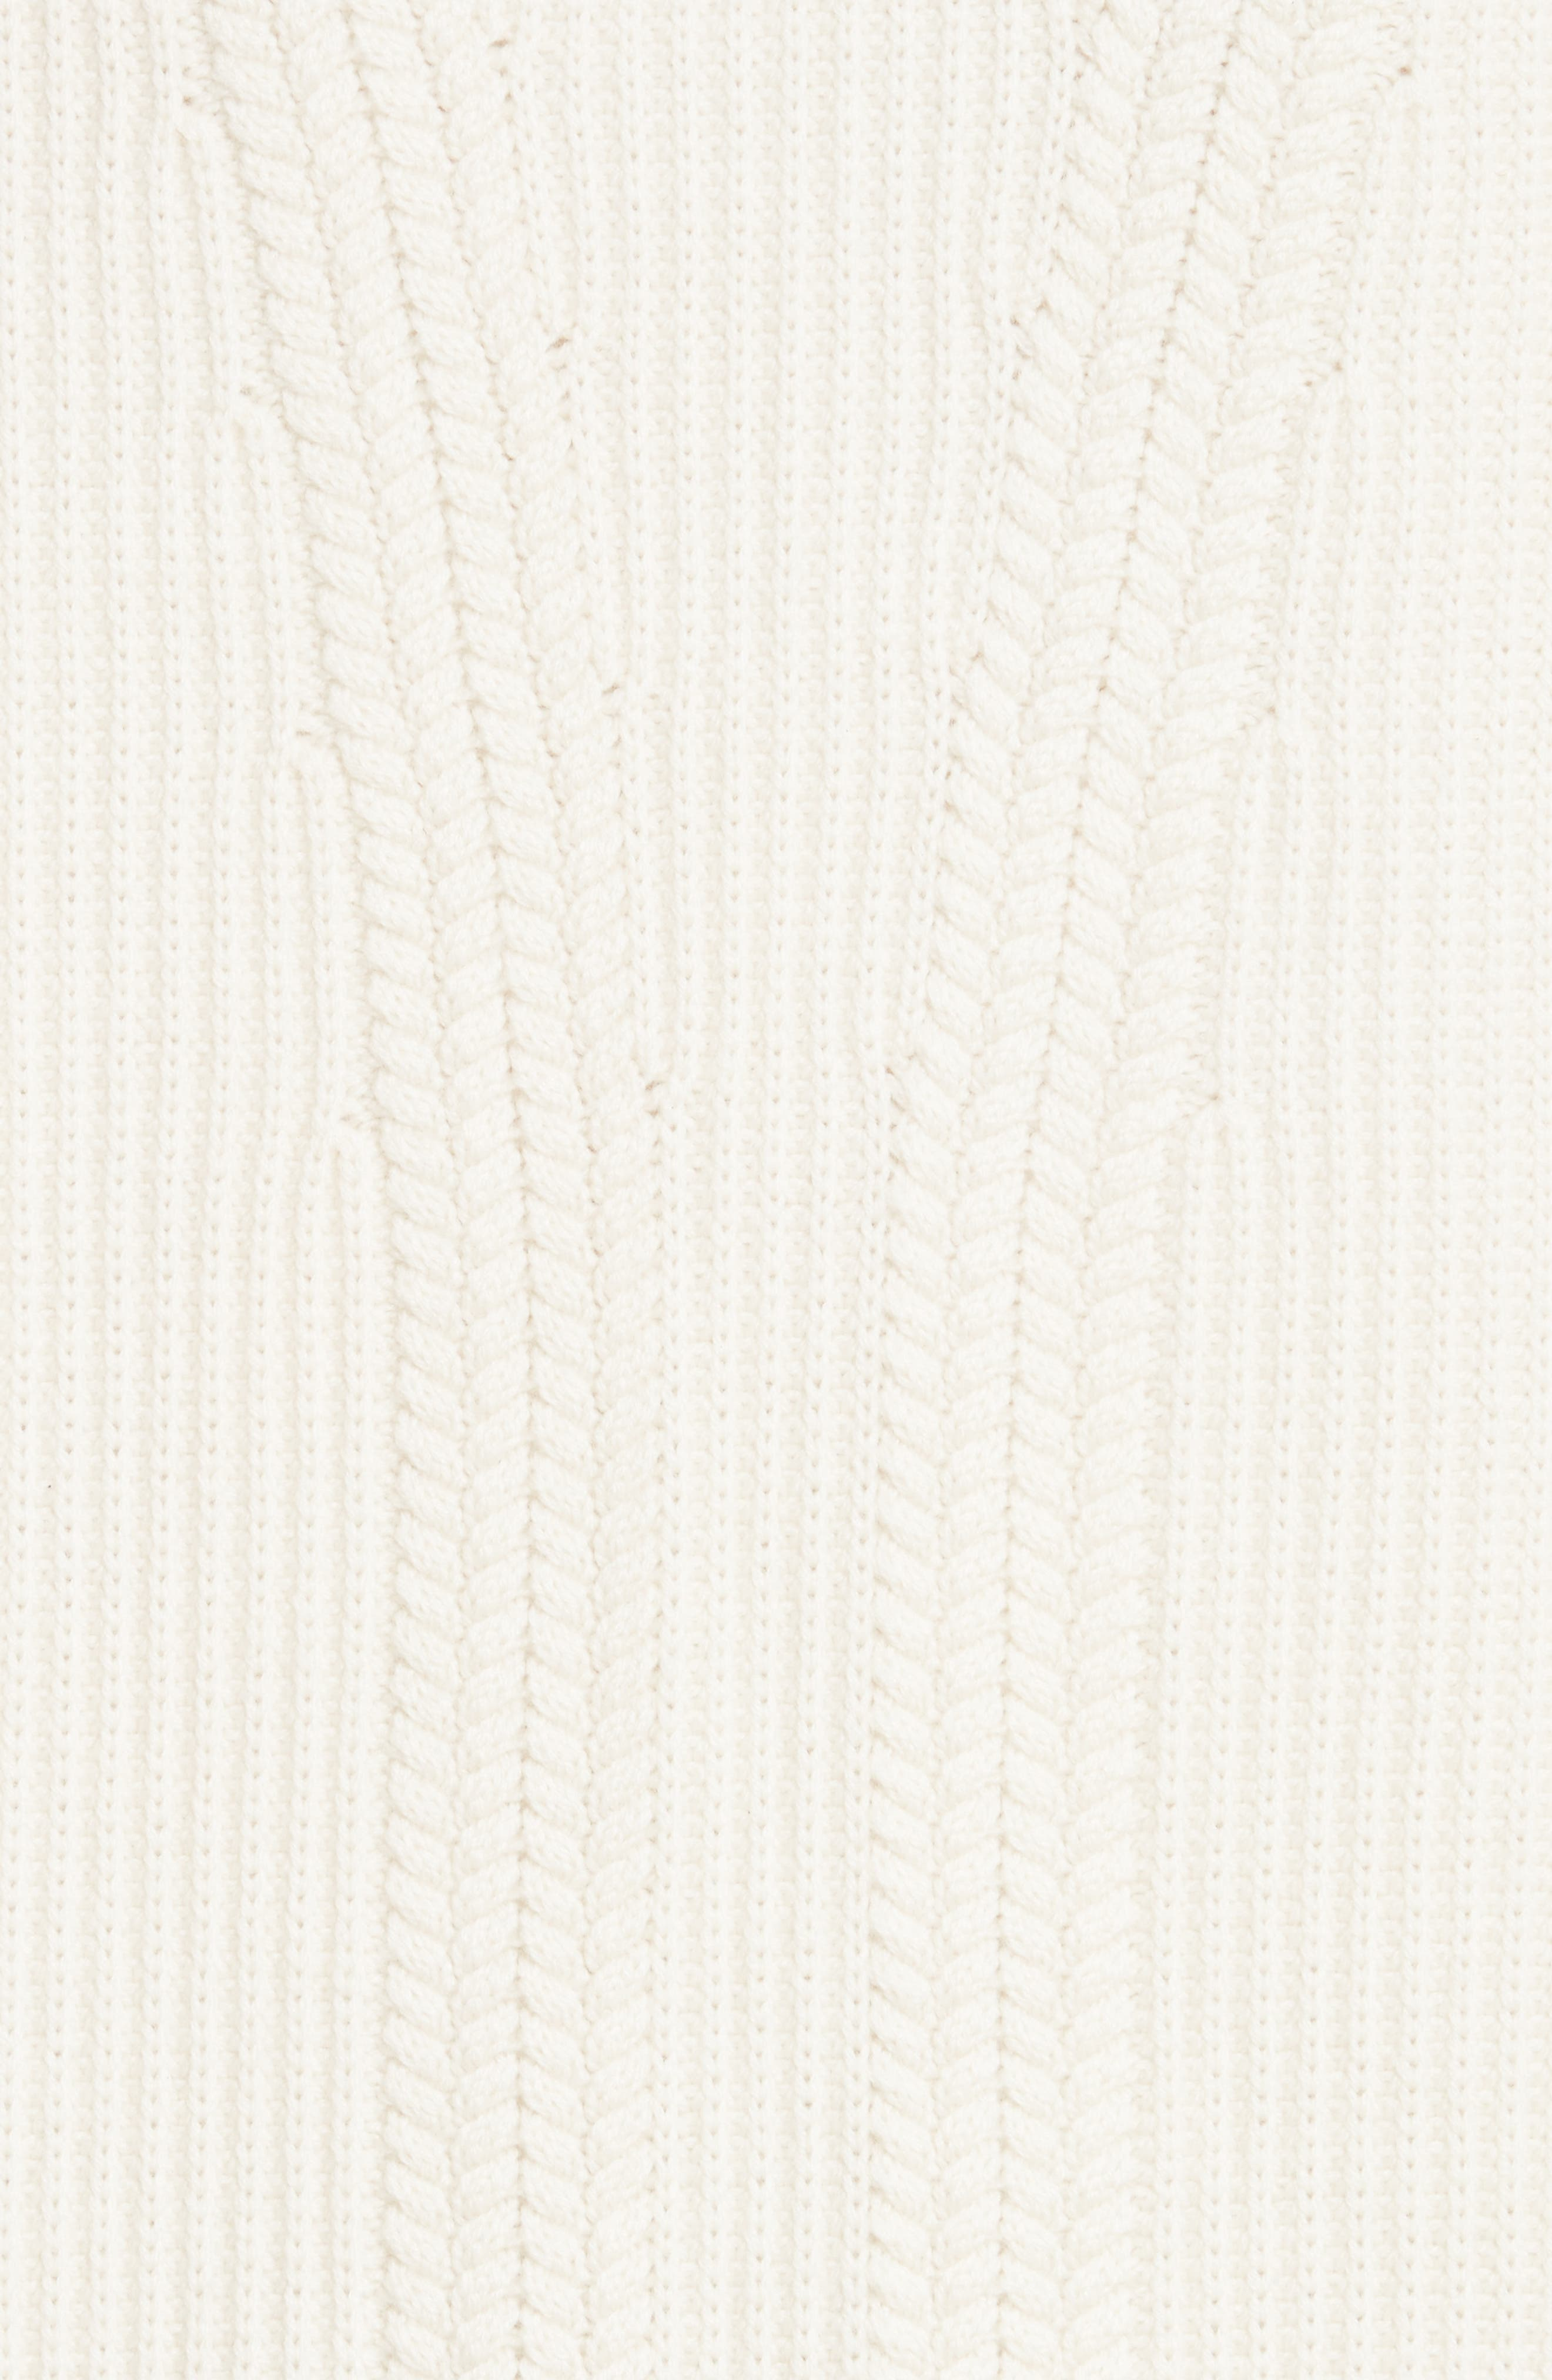 Santerno Wool & Cashmere Cable Knit Sweater,                             Alternate thumbnail 5, color,                             103